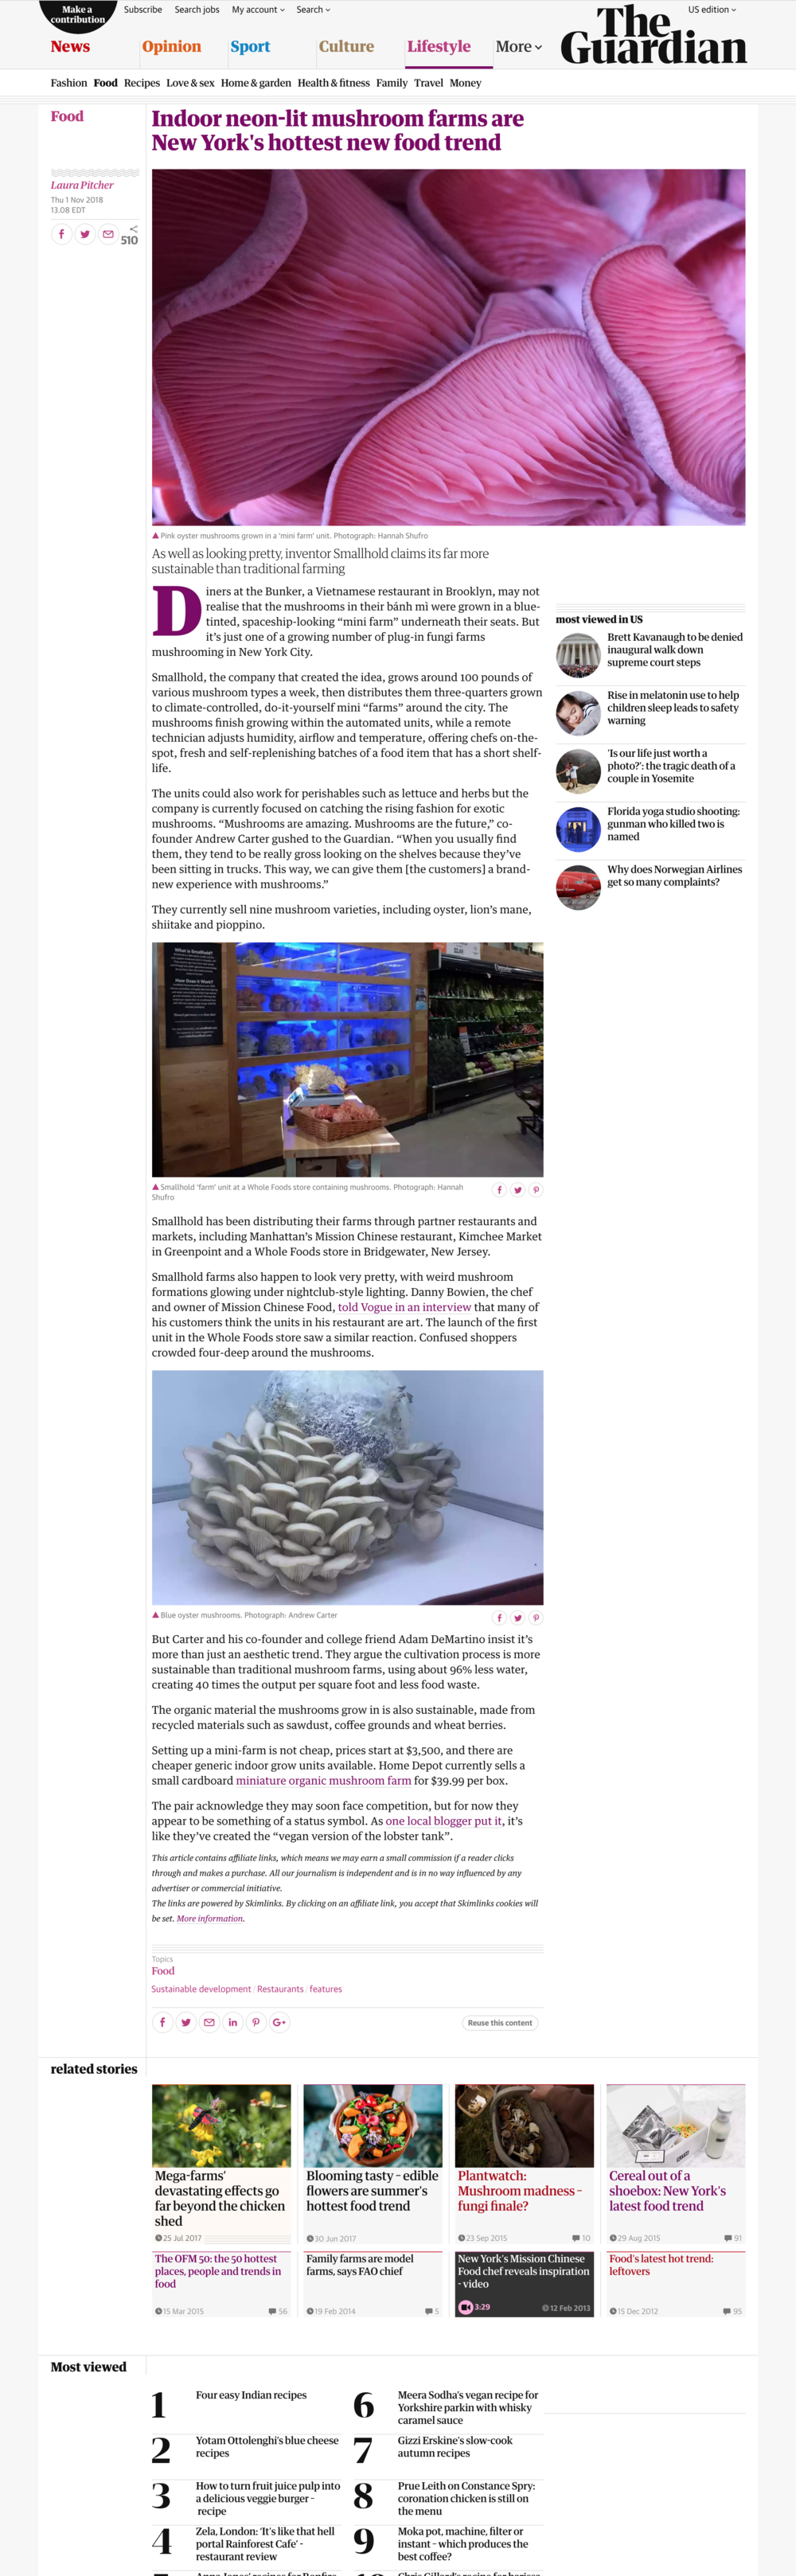 Indoor neon-lit mushroom farms are New York's hottest new food trend   Food   The Guardian.png